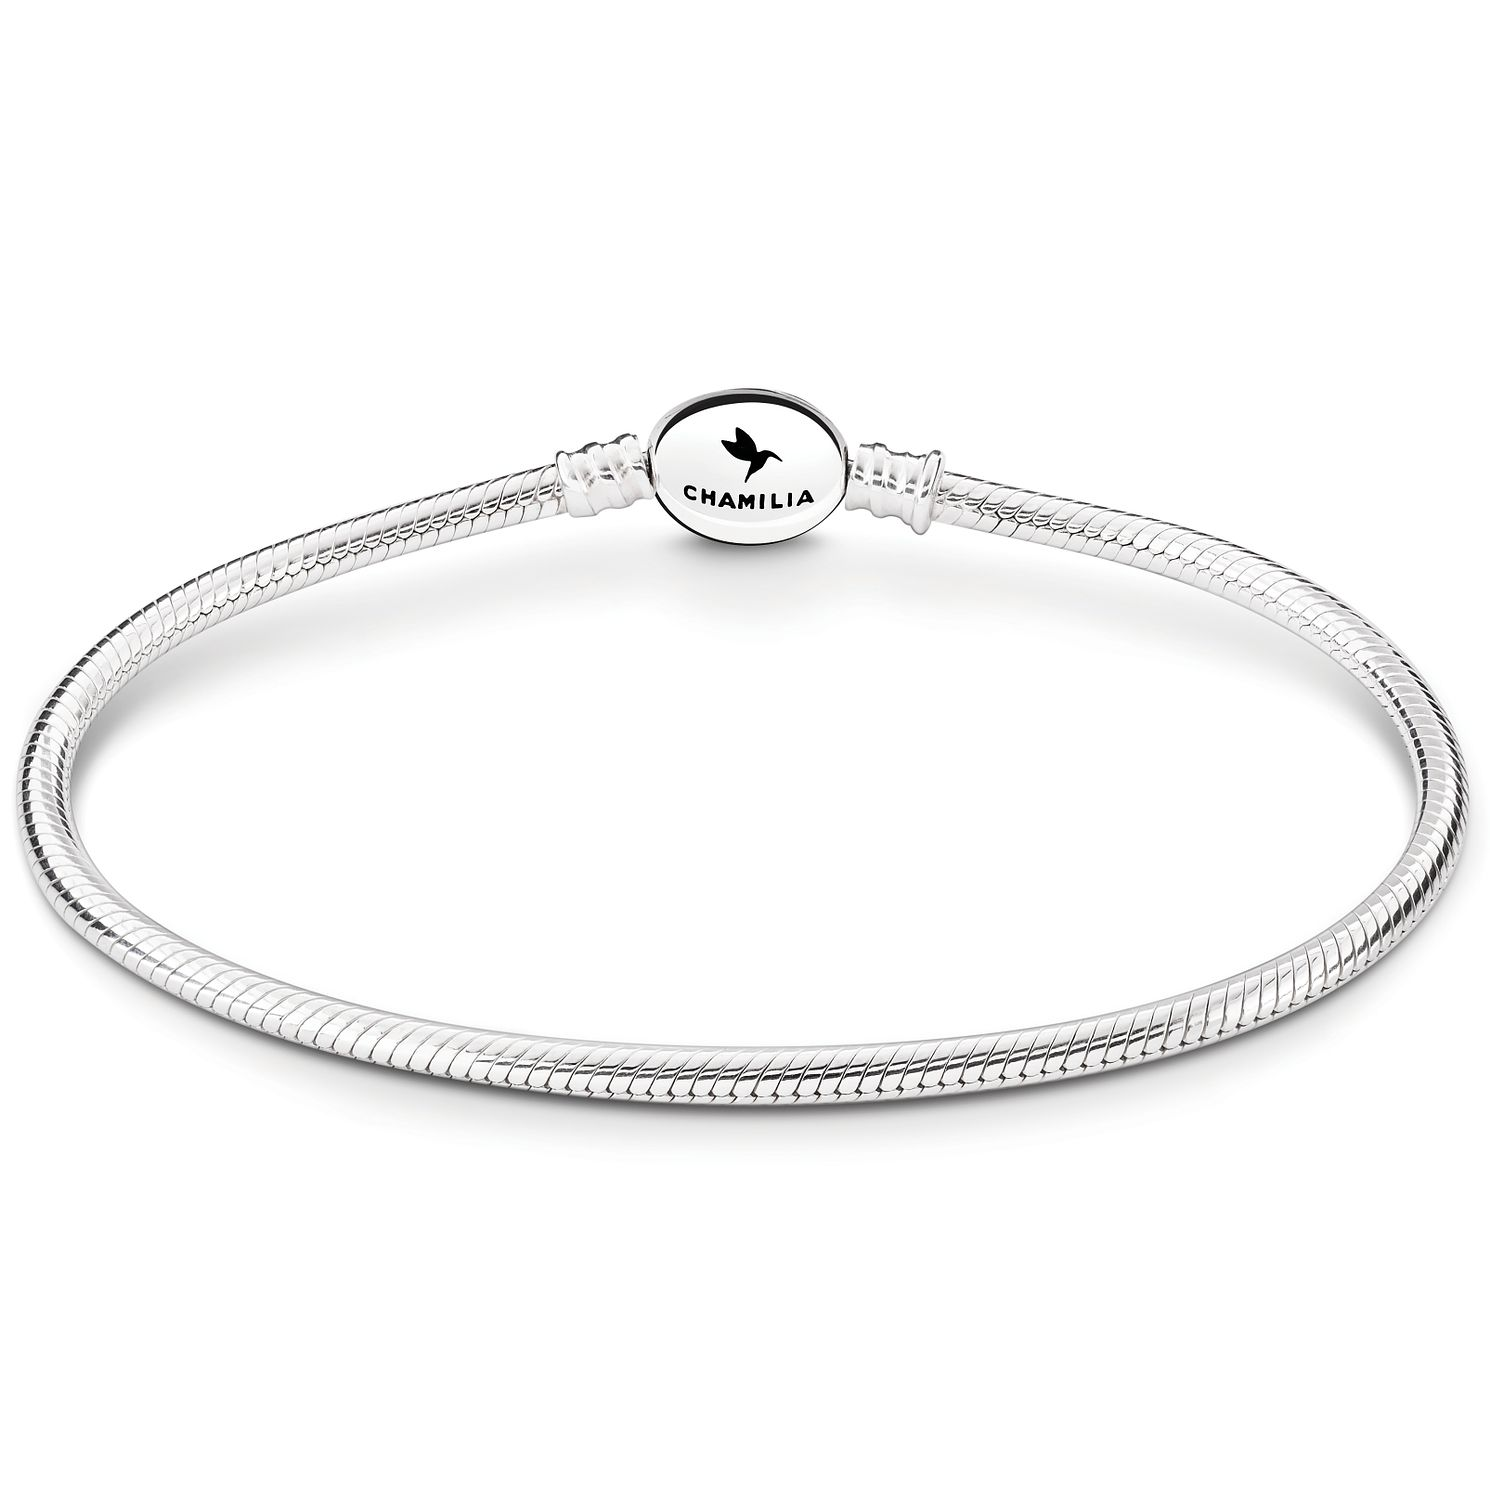 Chamilia Oval Snap Bracelet 7.5 inches - Product number 4969480